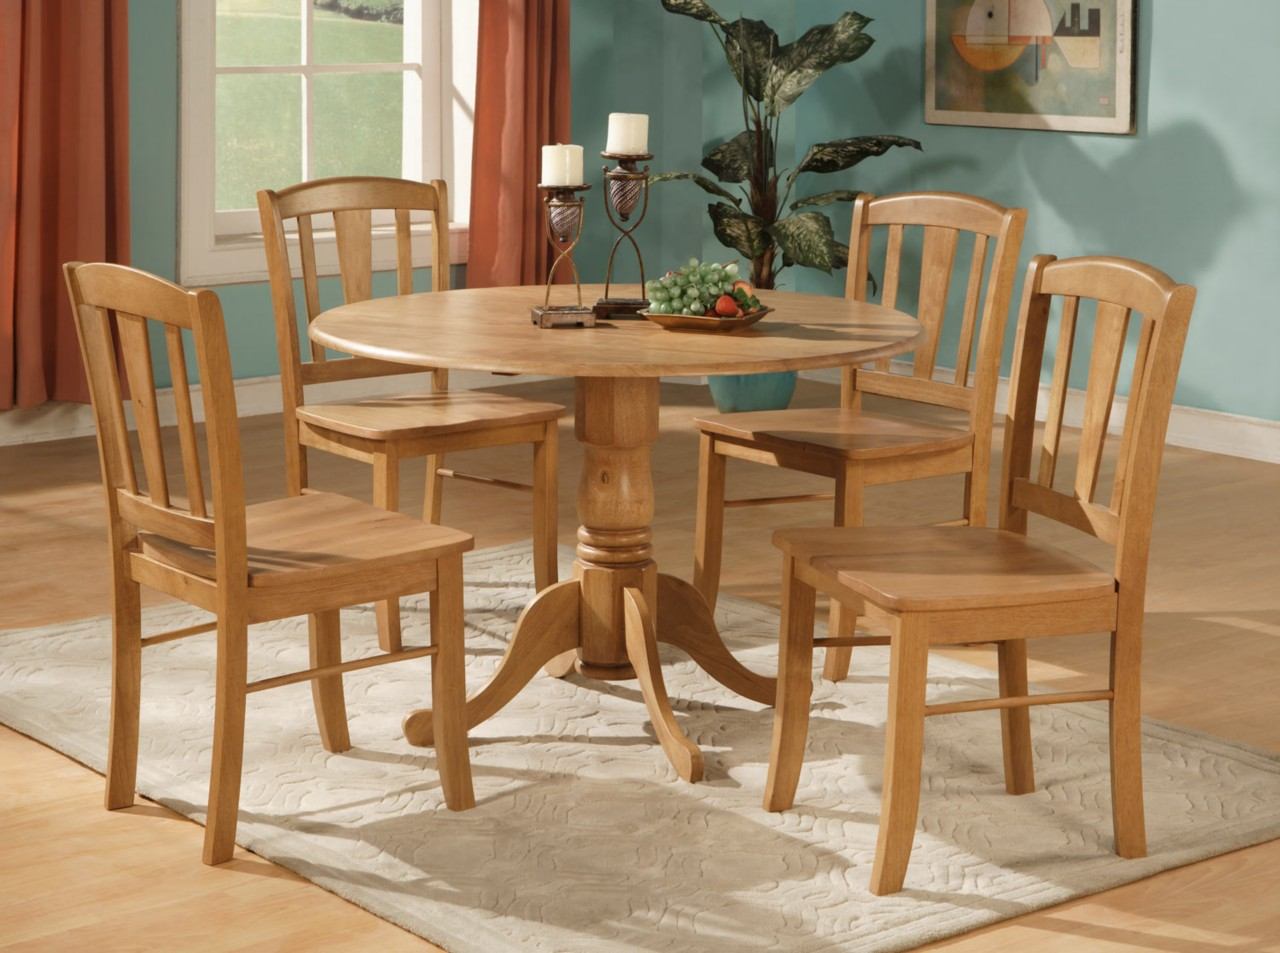 5pc round dinette kitchen dining set table and 4 chairs ebay for Kitchen table set 6 chairs